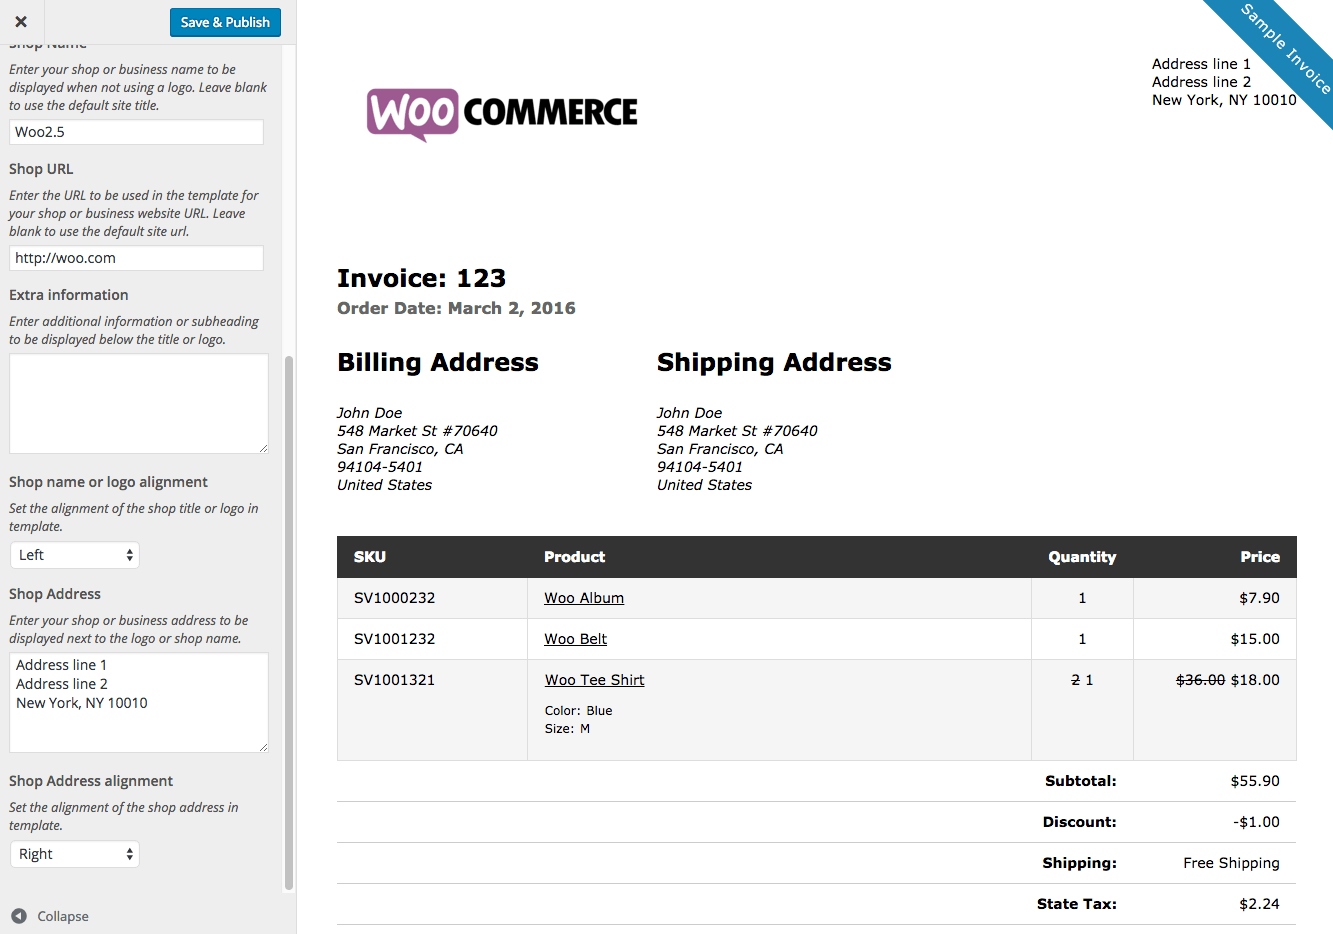 Weirdmailus  Terrific Woocommerce Print Invoices Amp Packing Lists  Woocommerce Docs With Likable Woocommerce Print Invoices  Packing Lists Customizer With Divine Sample Receipt Book Also Car Deposit Receipt Template In Addition Carbonless Receipts And Sample Of Official Receipt Form As Well As Fake Taxi Receipts Additionally Format Receipt From Docswoocommercecom With Weirdmailus  Likable Woocommerce Print Invoices Amp Packing Lists  Woocommerce Docs With Divine Woocommerce Print Invoices  Packing Lists Customizer And Terrific Sample Receipt Book Also Car Deposit Receipt Template In Addition Carbonless Receipts From Docswoocommercecom